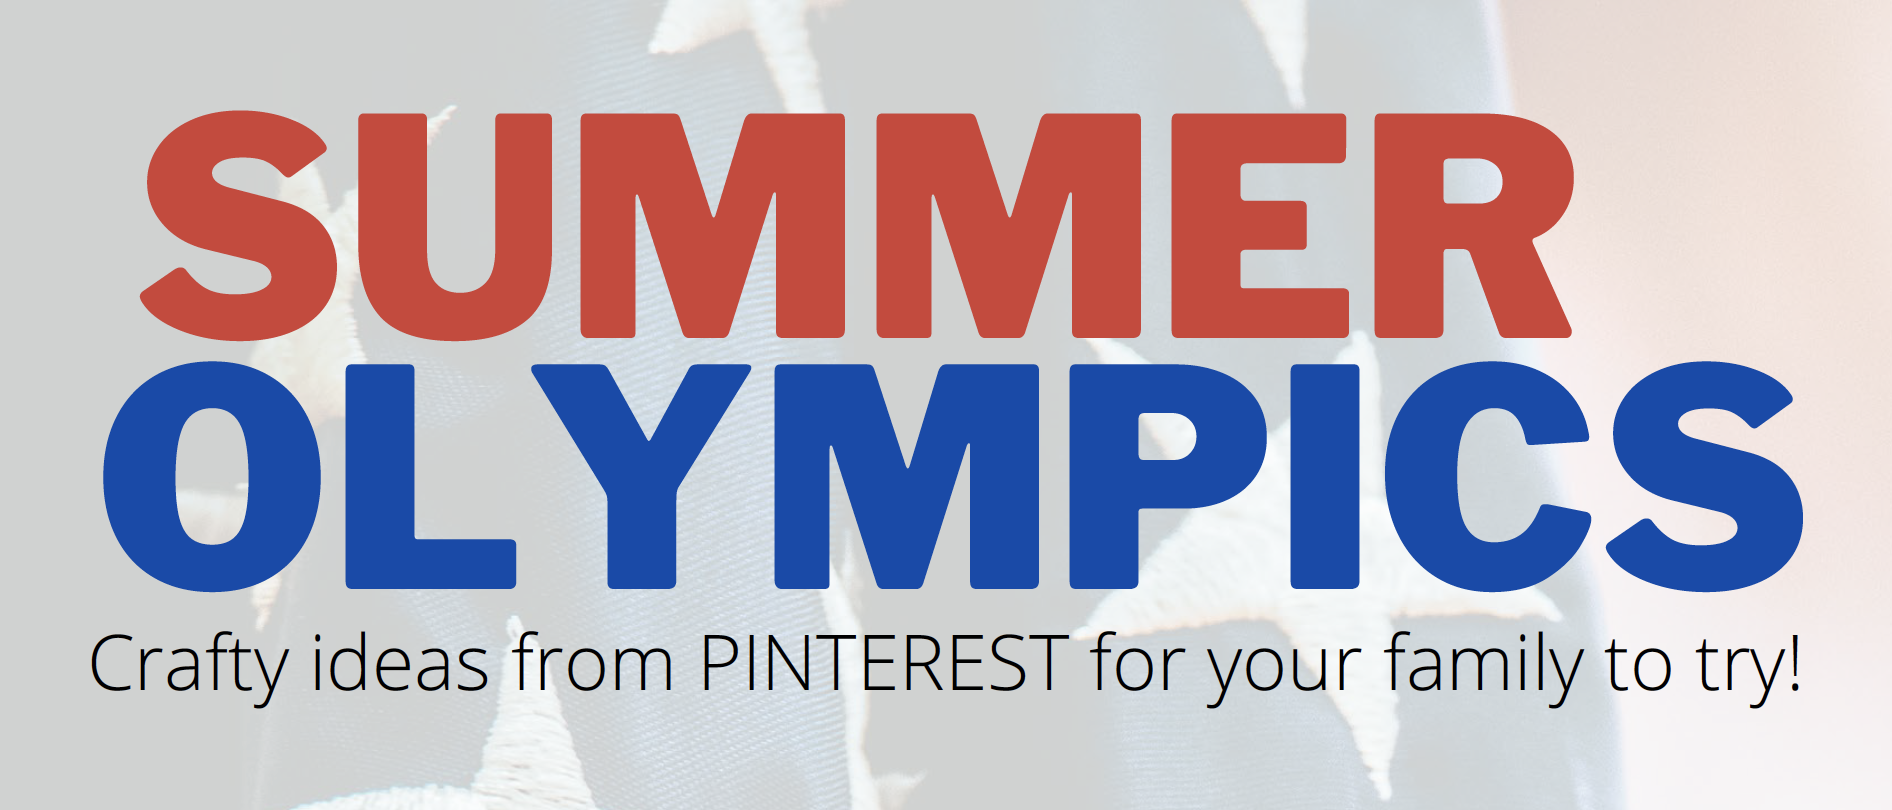 Feature image for summer olympics crafts at home